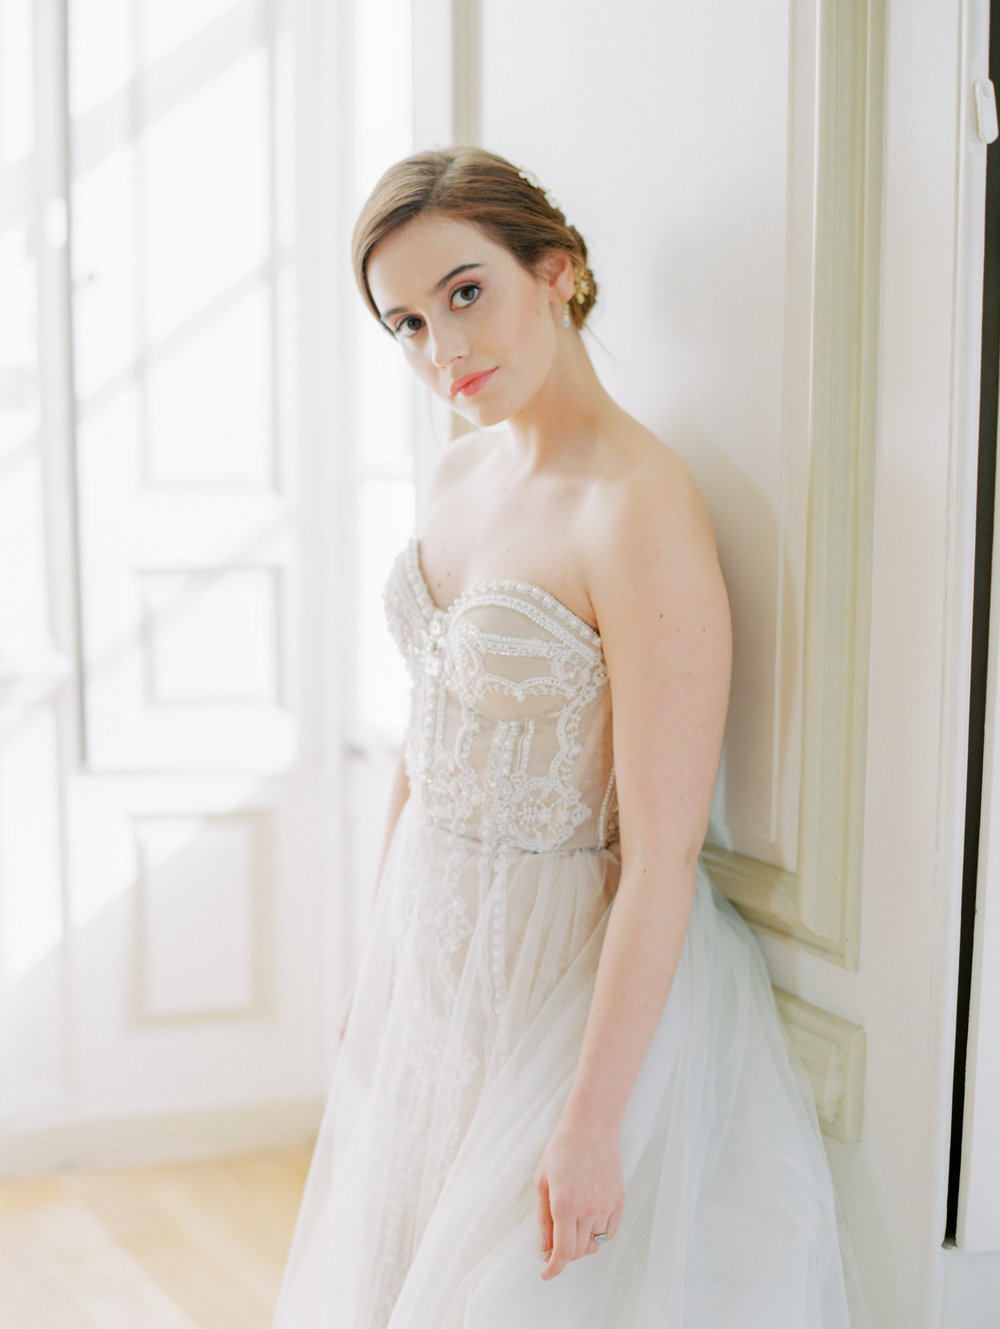 The Timeless Stylist-Elegant and Romantic Wedding Styling-Natural Bride